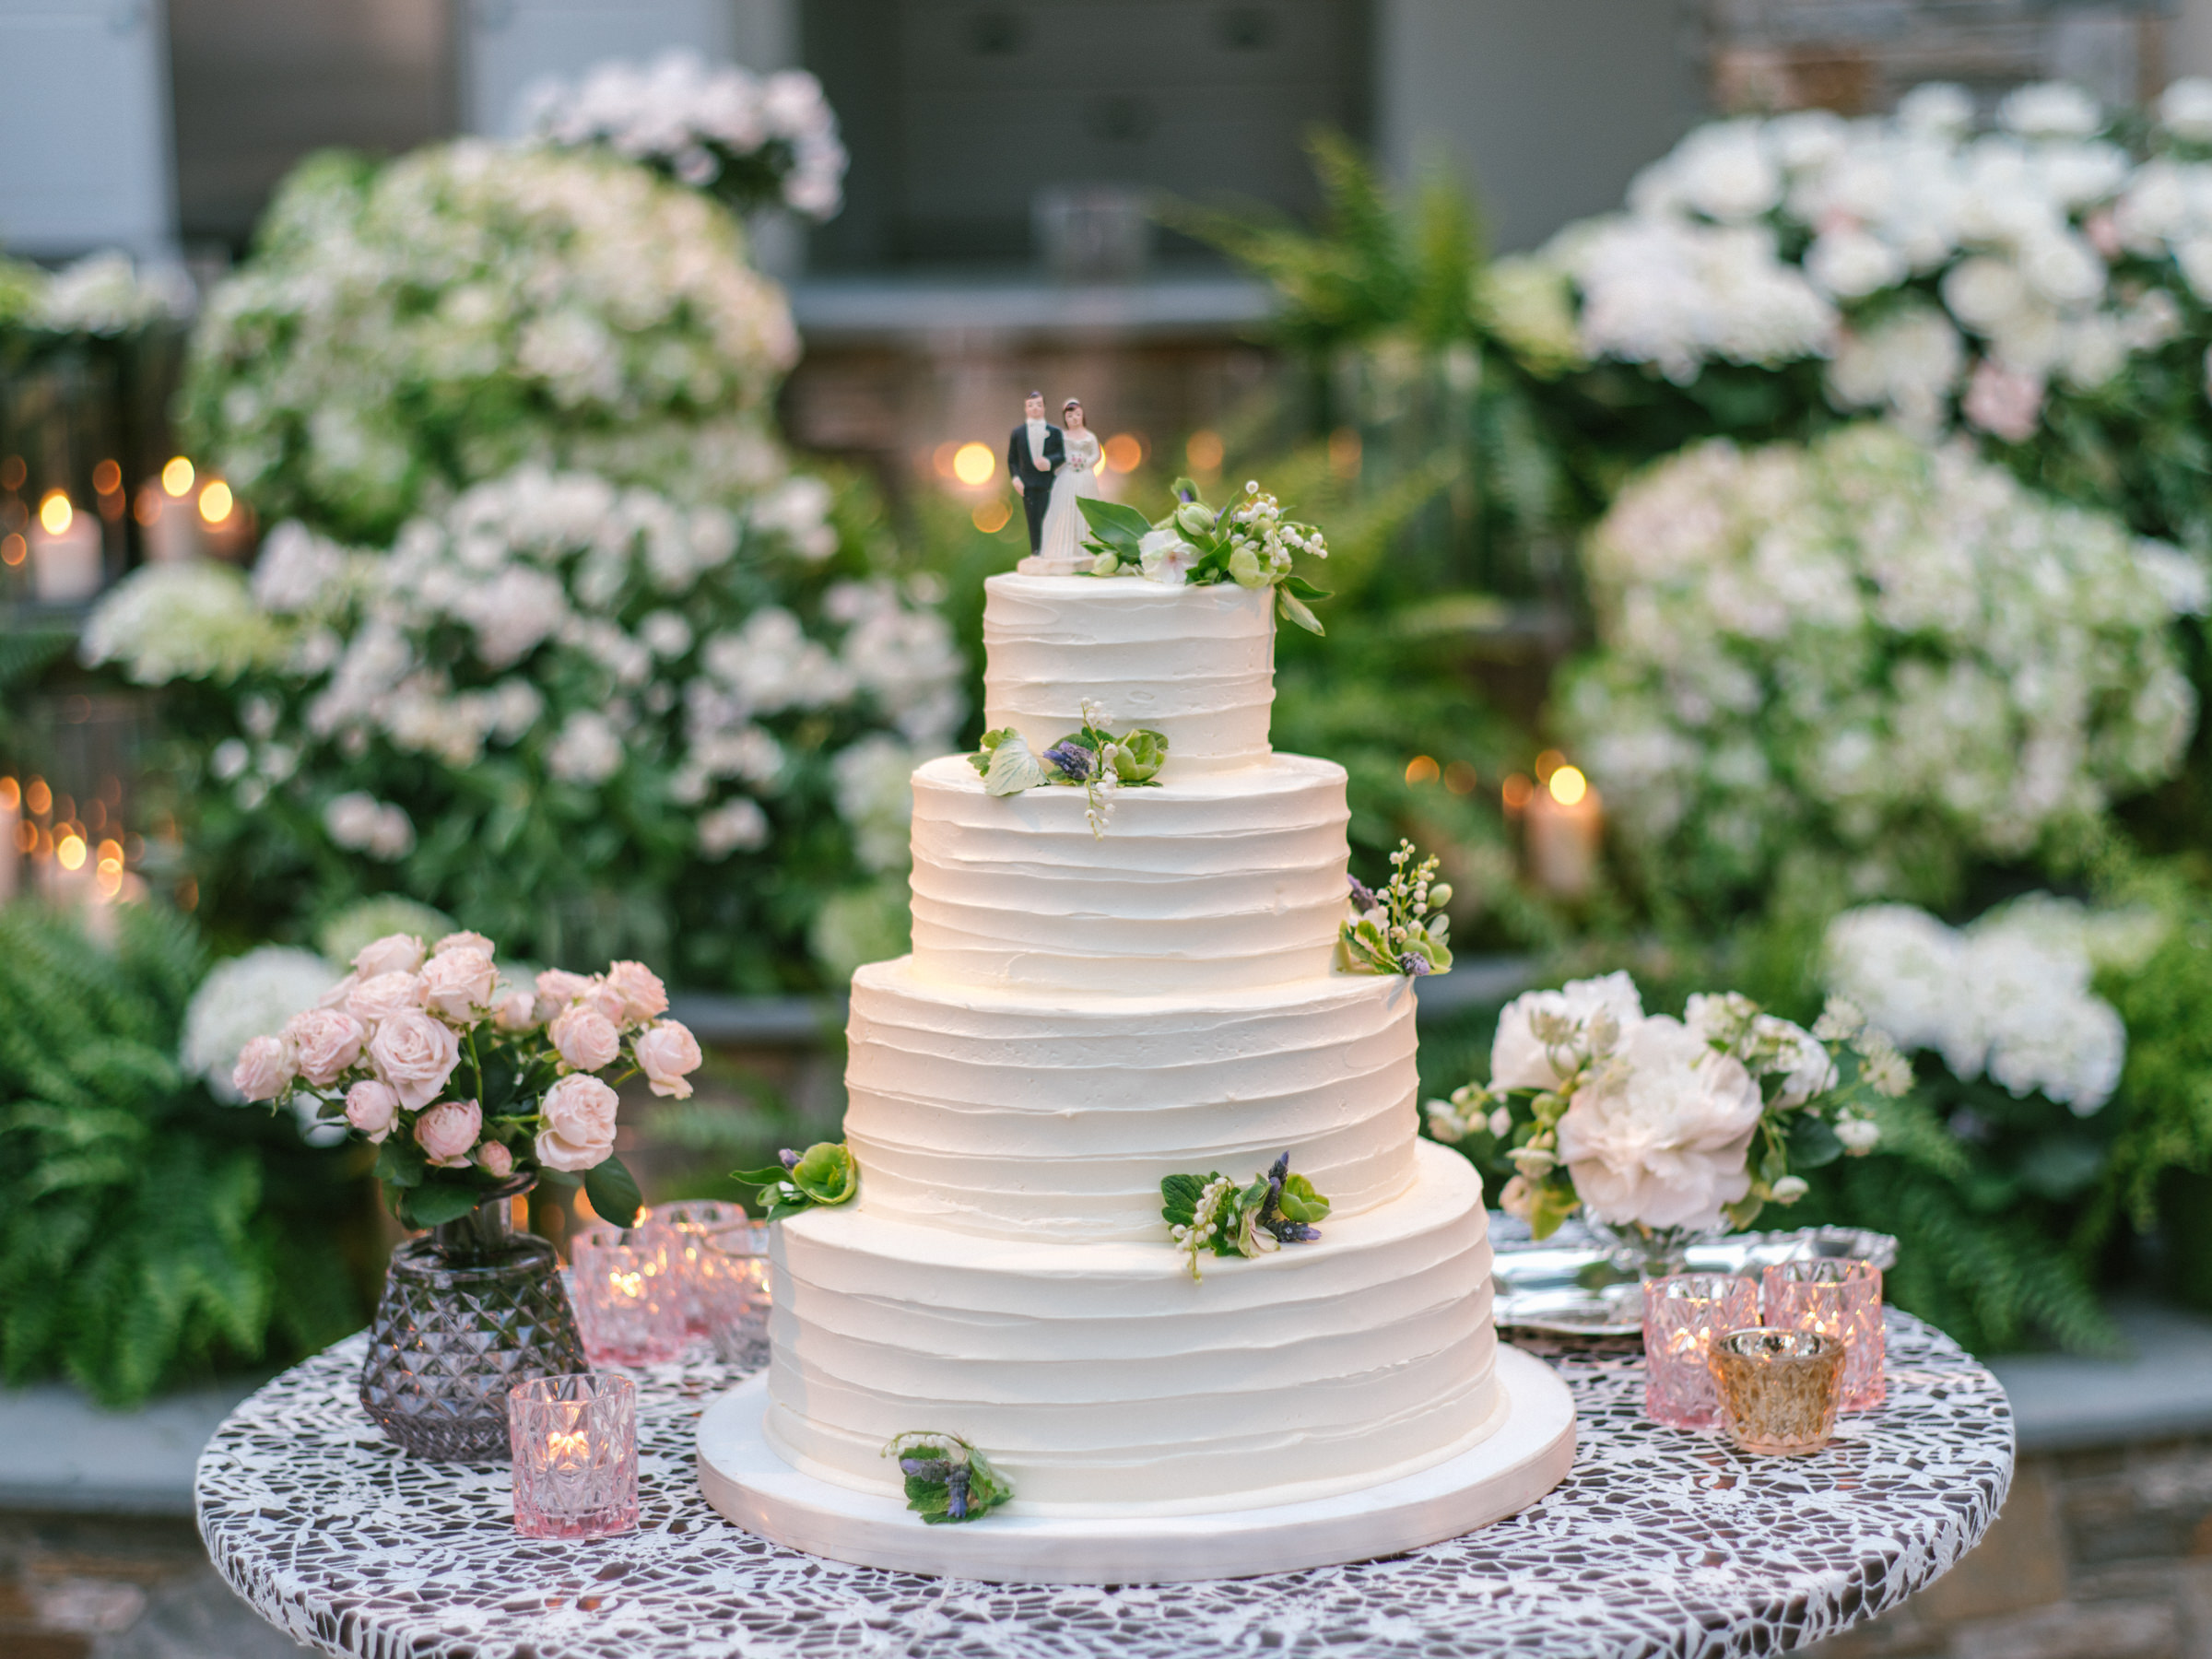 Four tier wedding cake with floral decorations and bride and groom ornament - photo by Amy and Stuart Photography